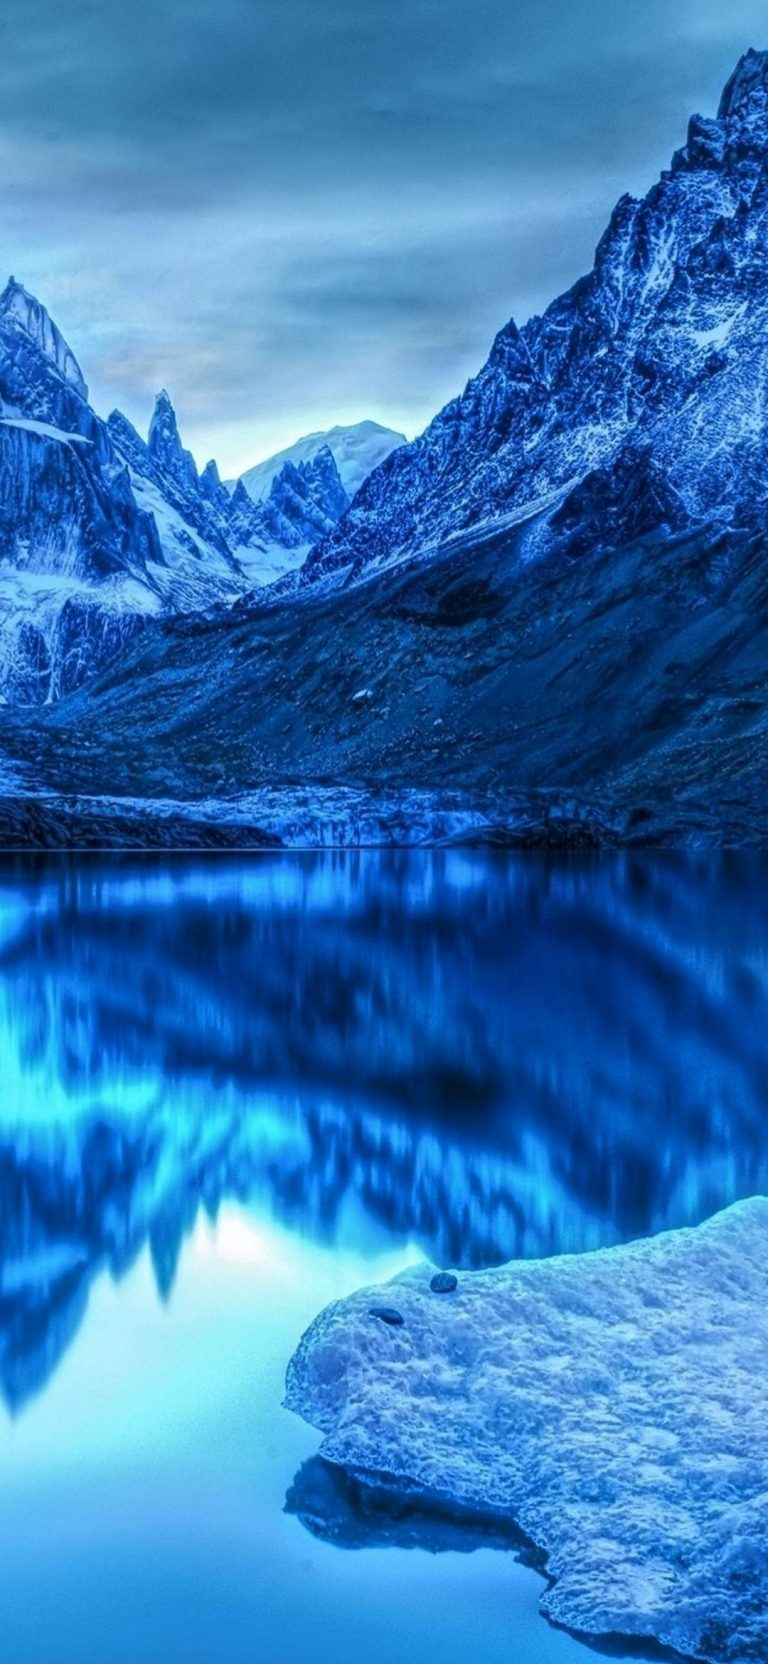 Mountains-Reflection-1080x2340-768x1664-1 - 51+ BEST Free vivo Z1 Pro Phone Wallpapers [year]